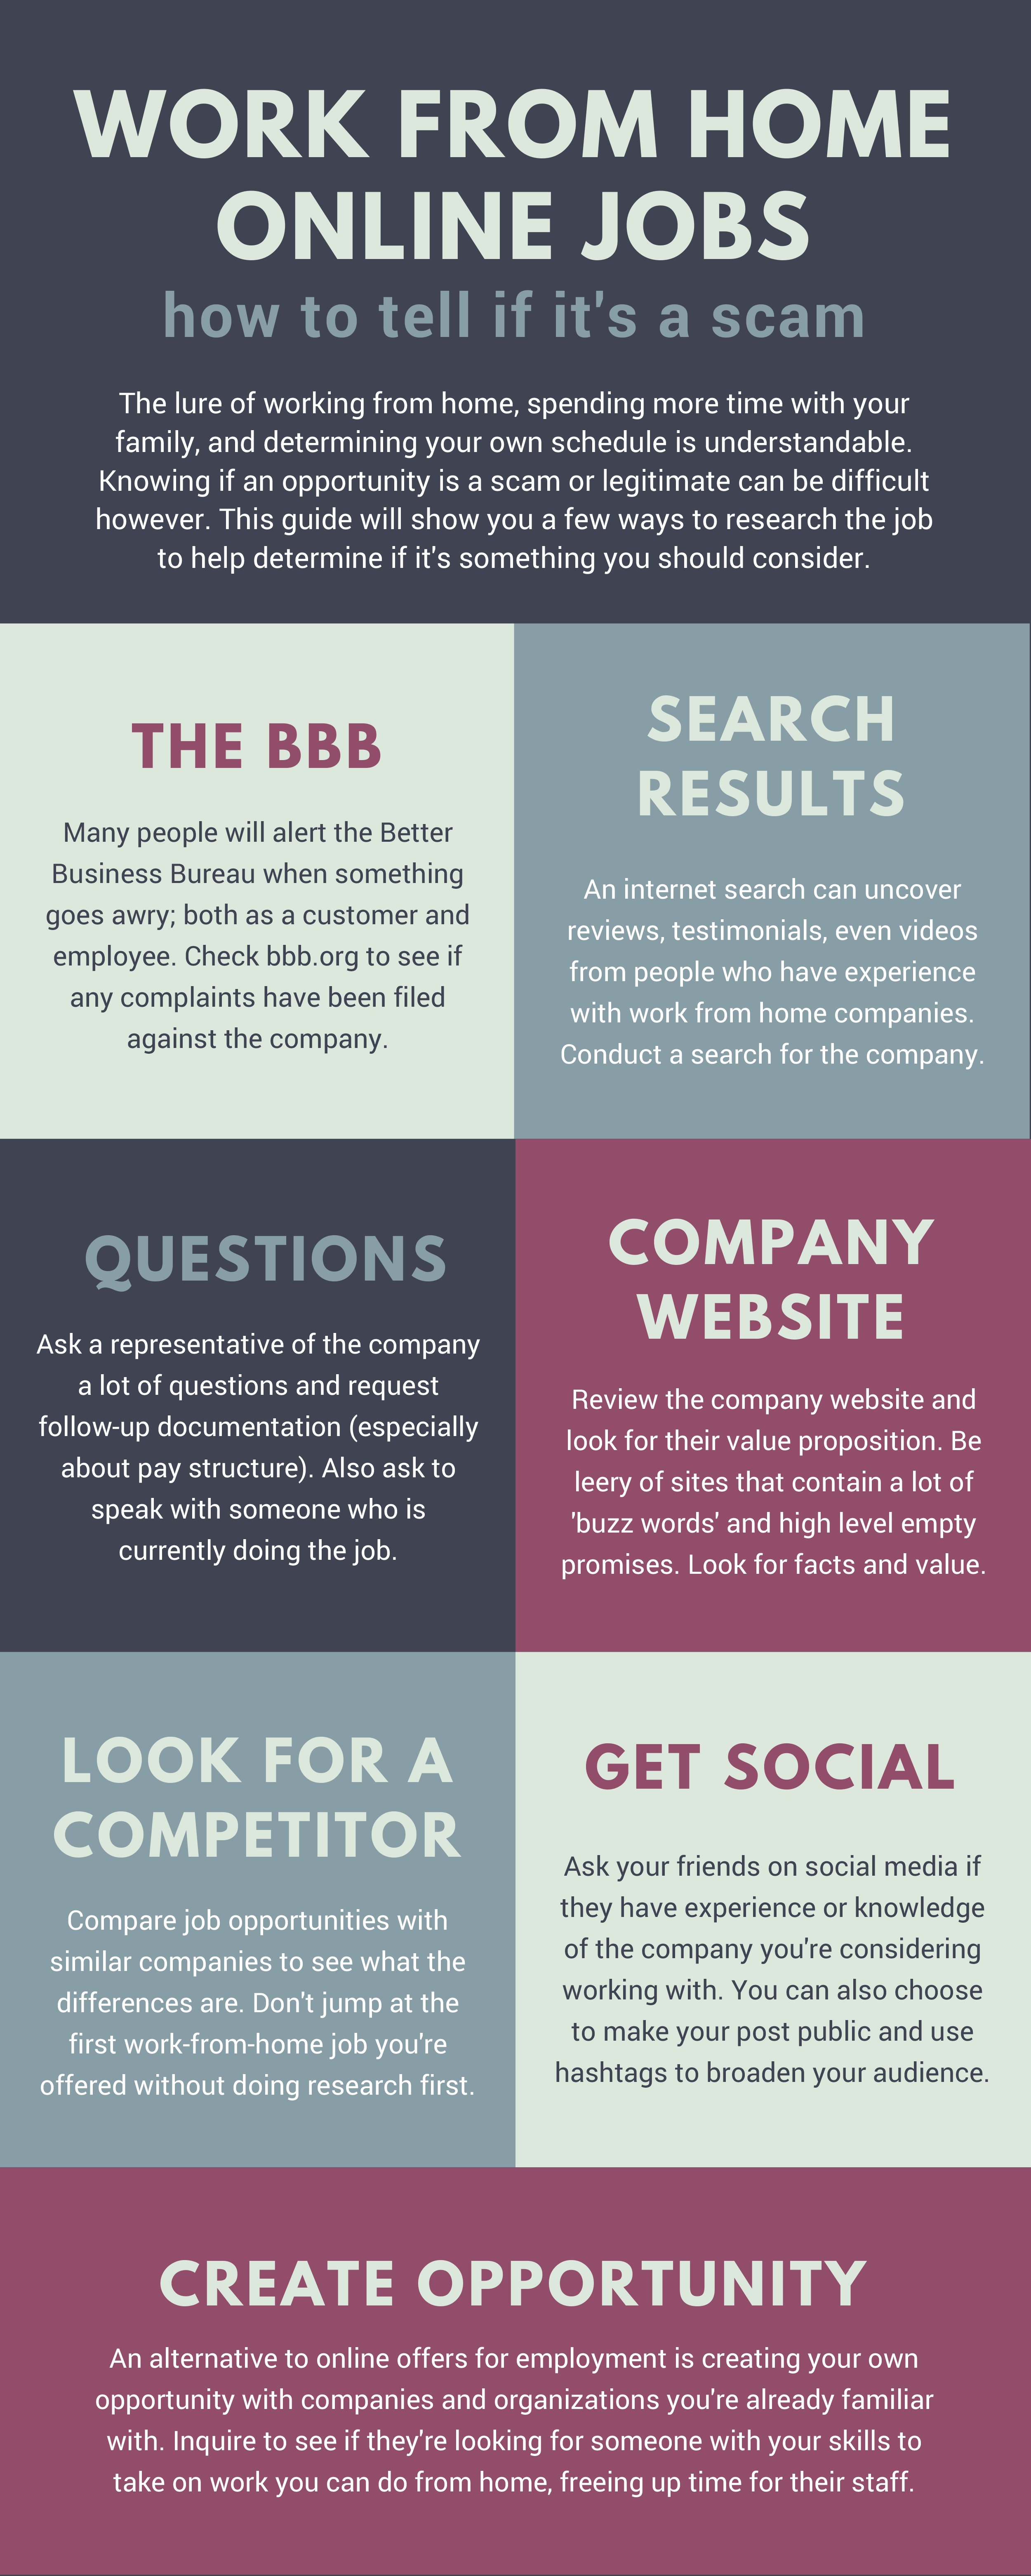 Work from Home Online Jobs - Infographic.png